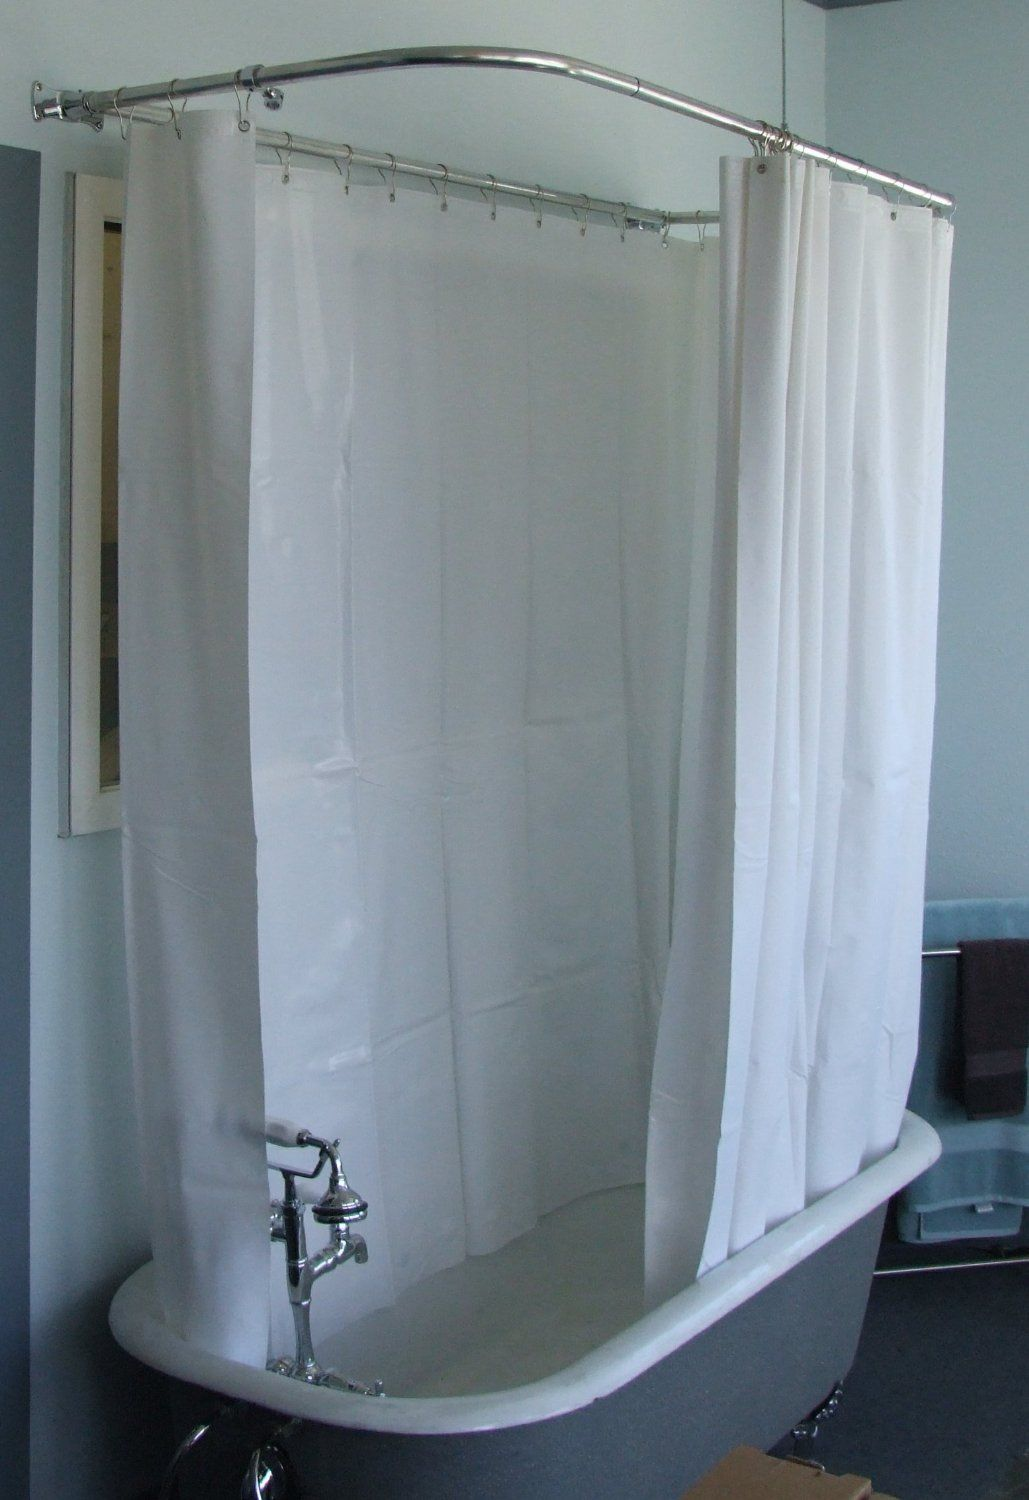 Add Shower To Clawfoot Tub. 180  shower curtain for clawfoot tubs 55 Add a tile wall and floor